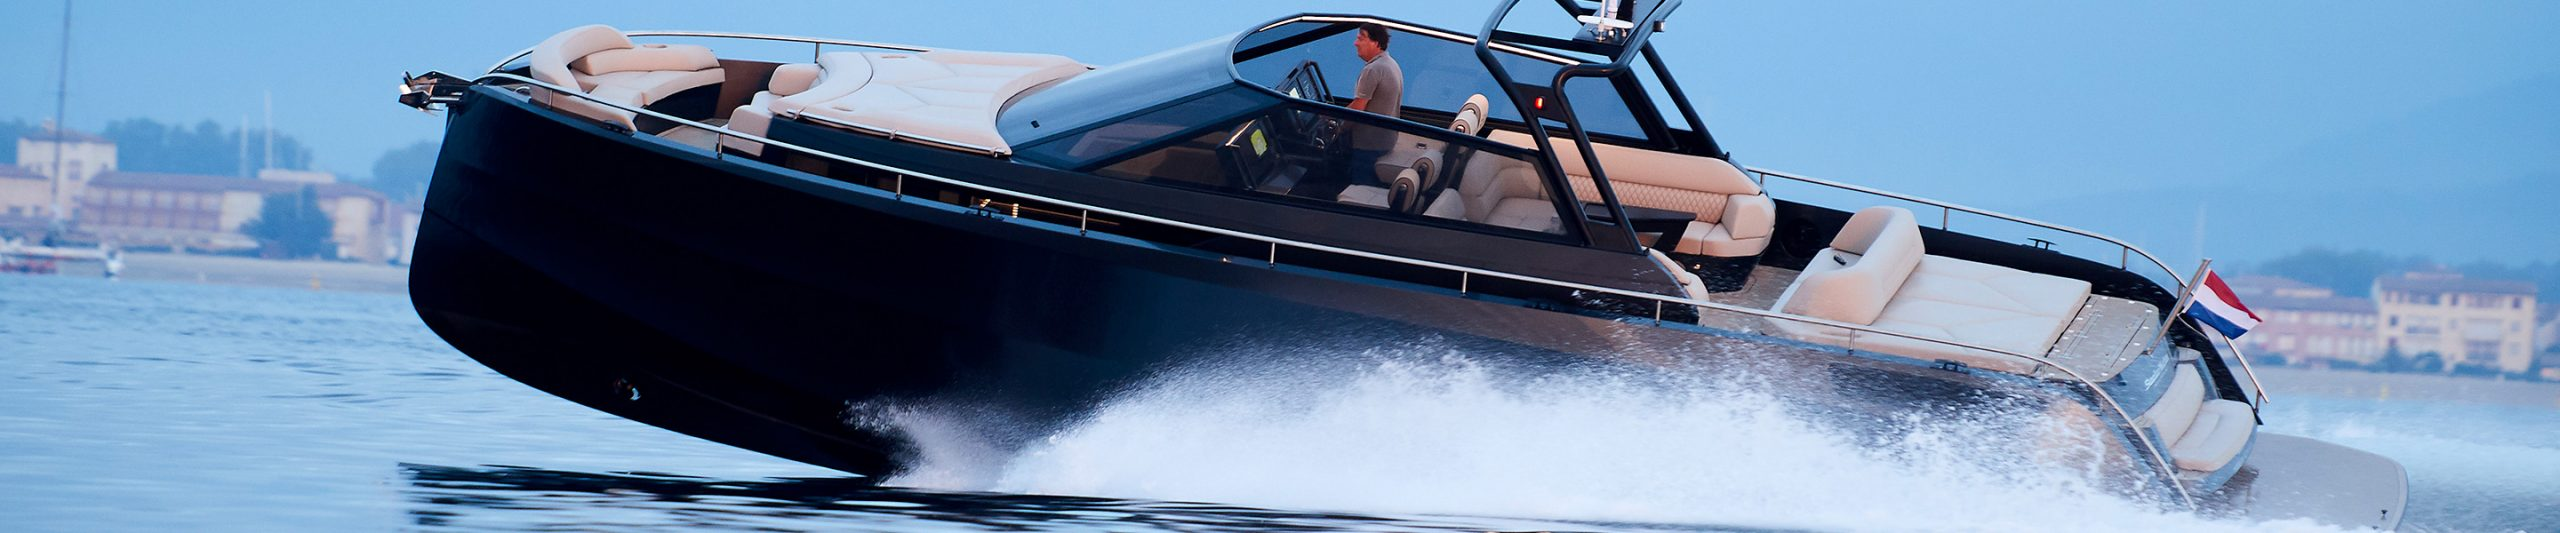 Sports Boats Gallery